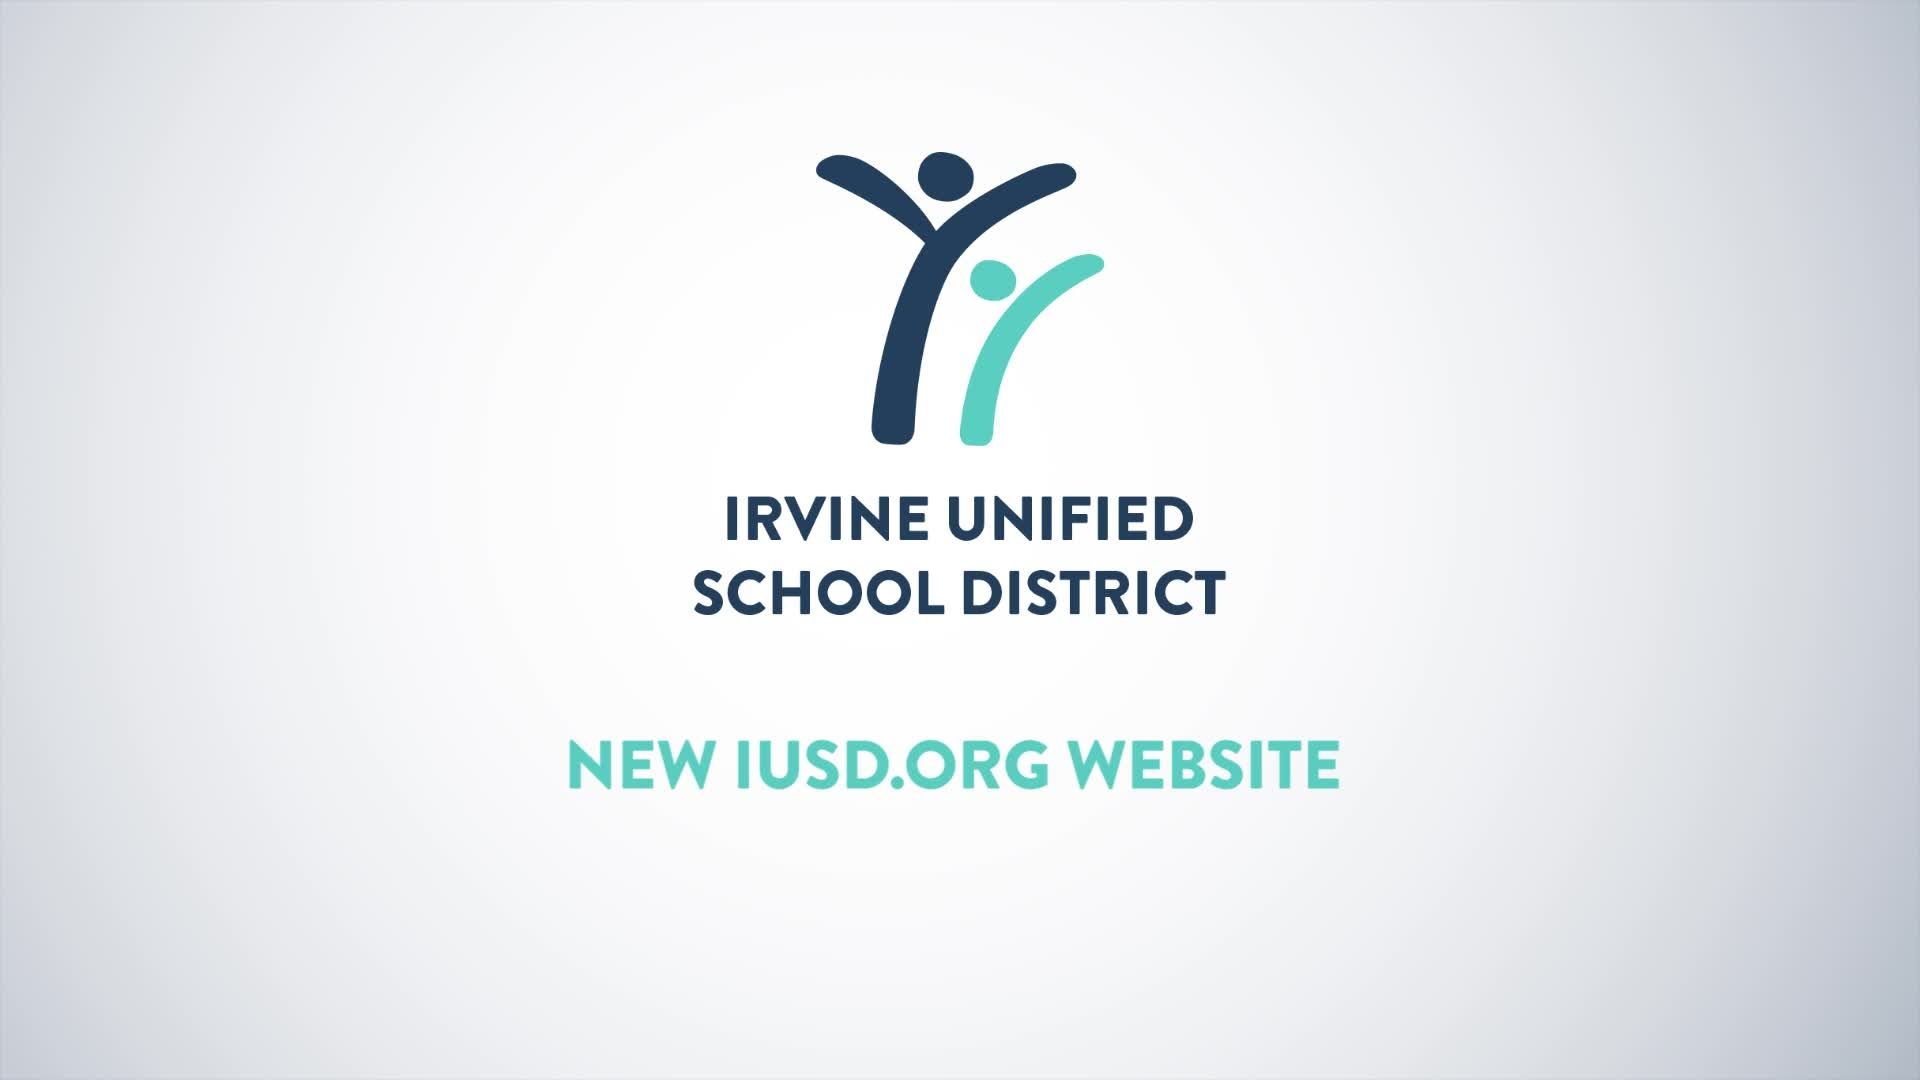 overview of the new iusd.org website